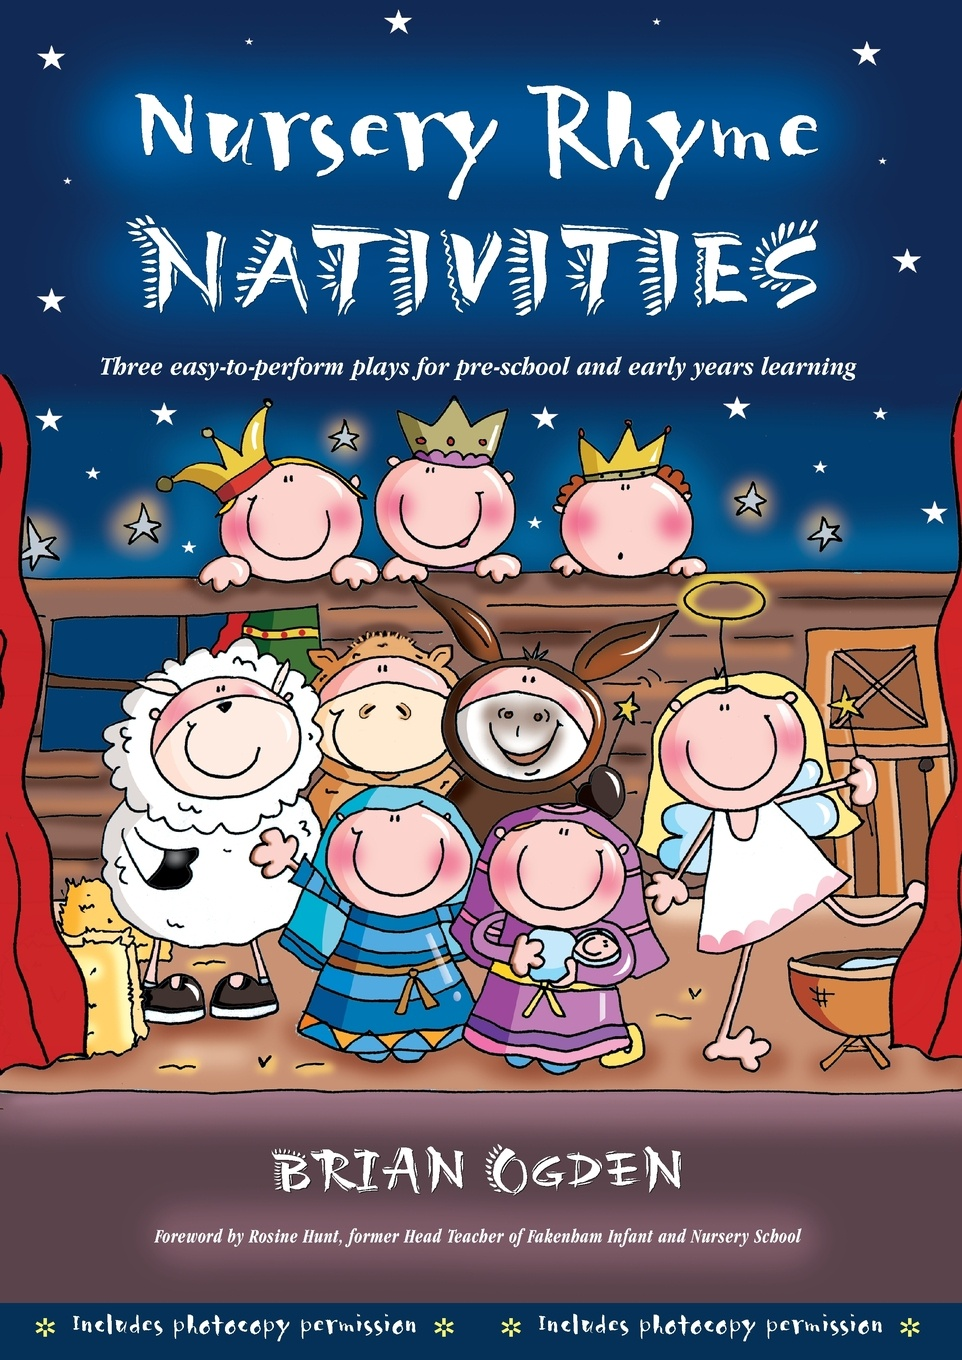 Brian Ogden Nursery Rhyme Nativities